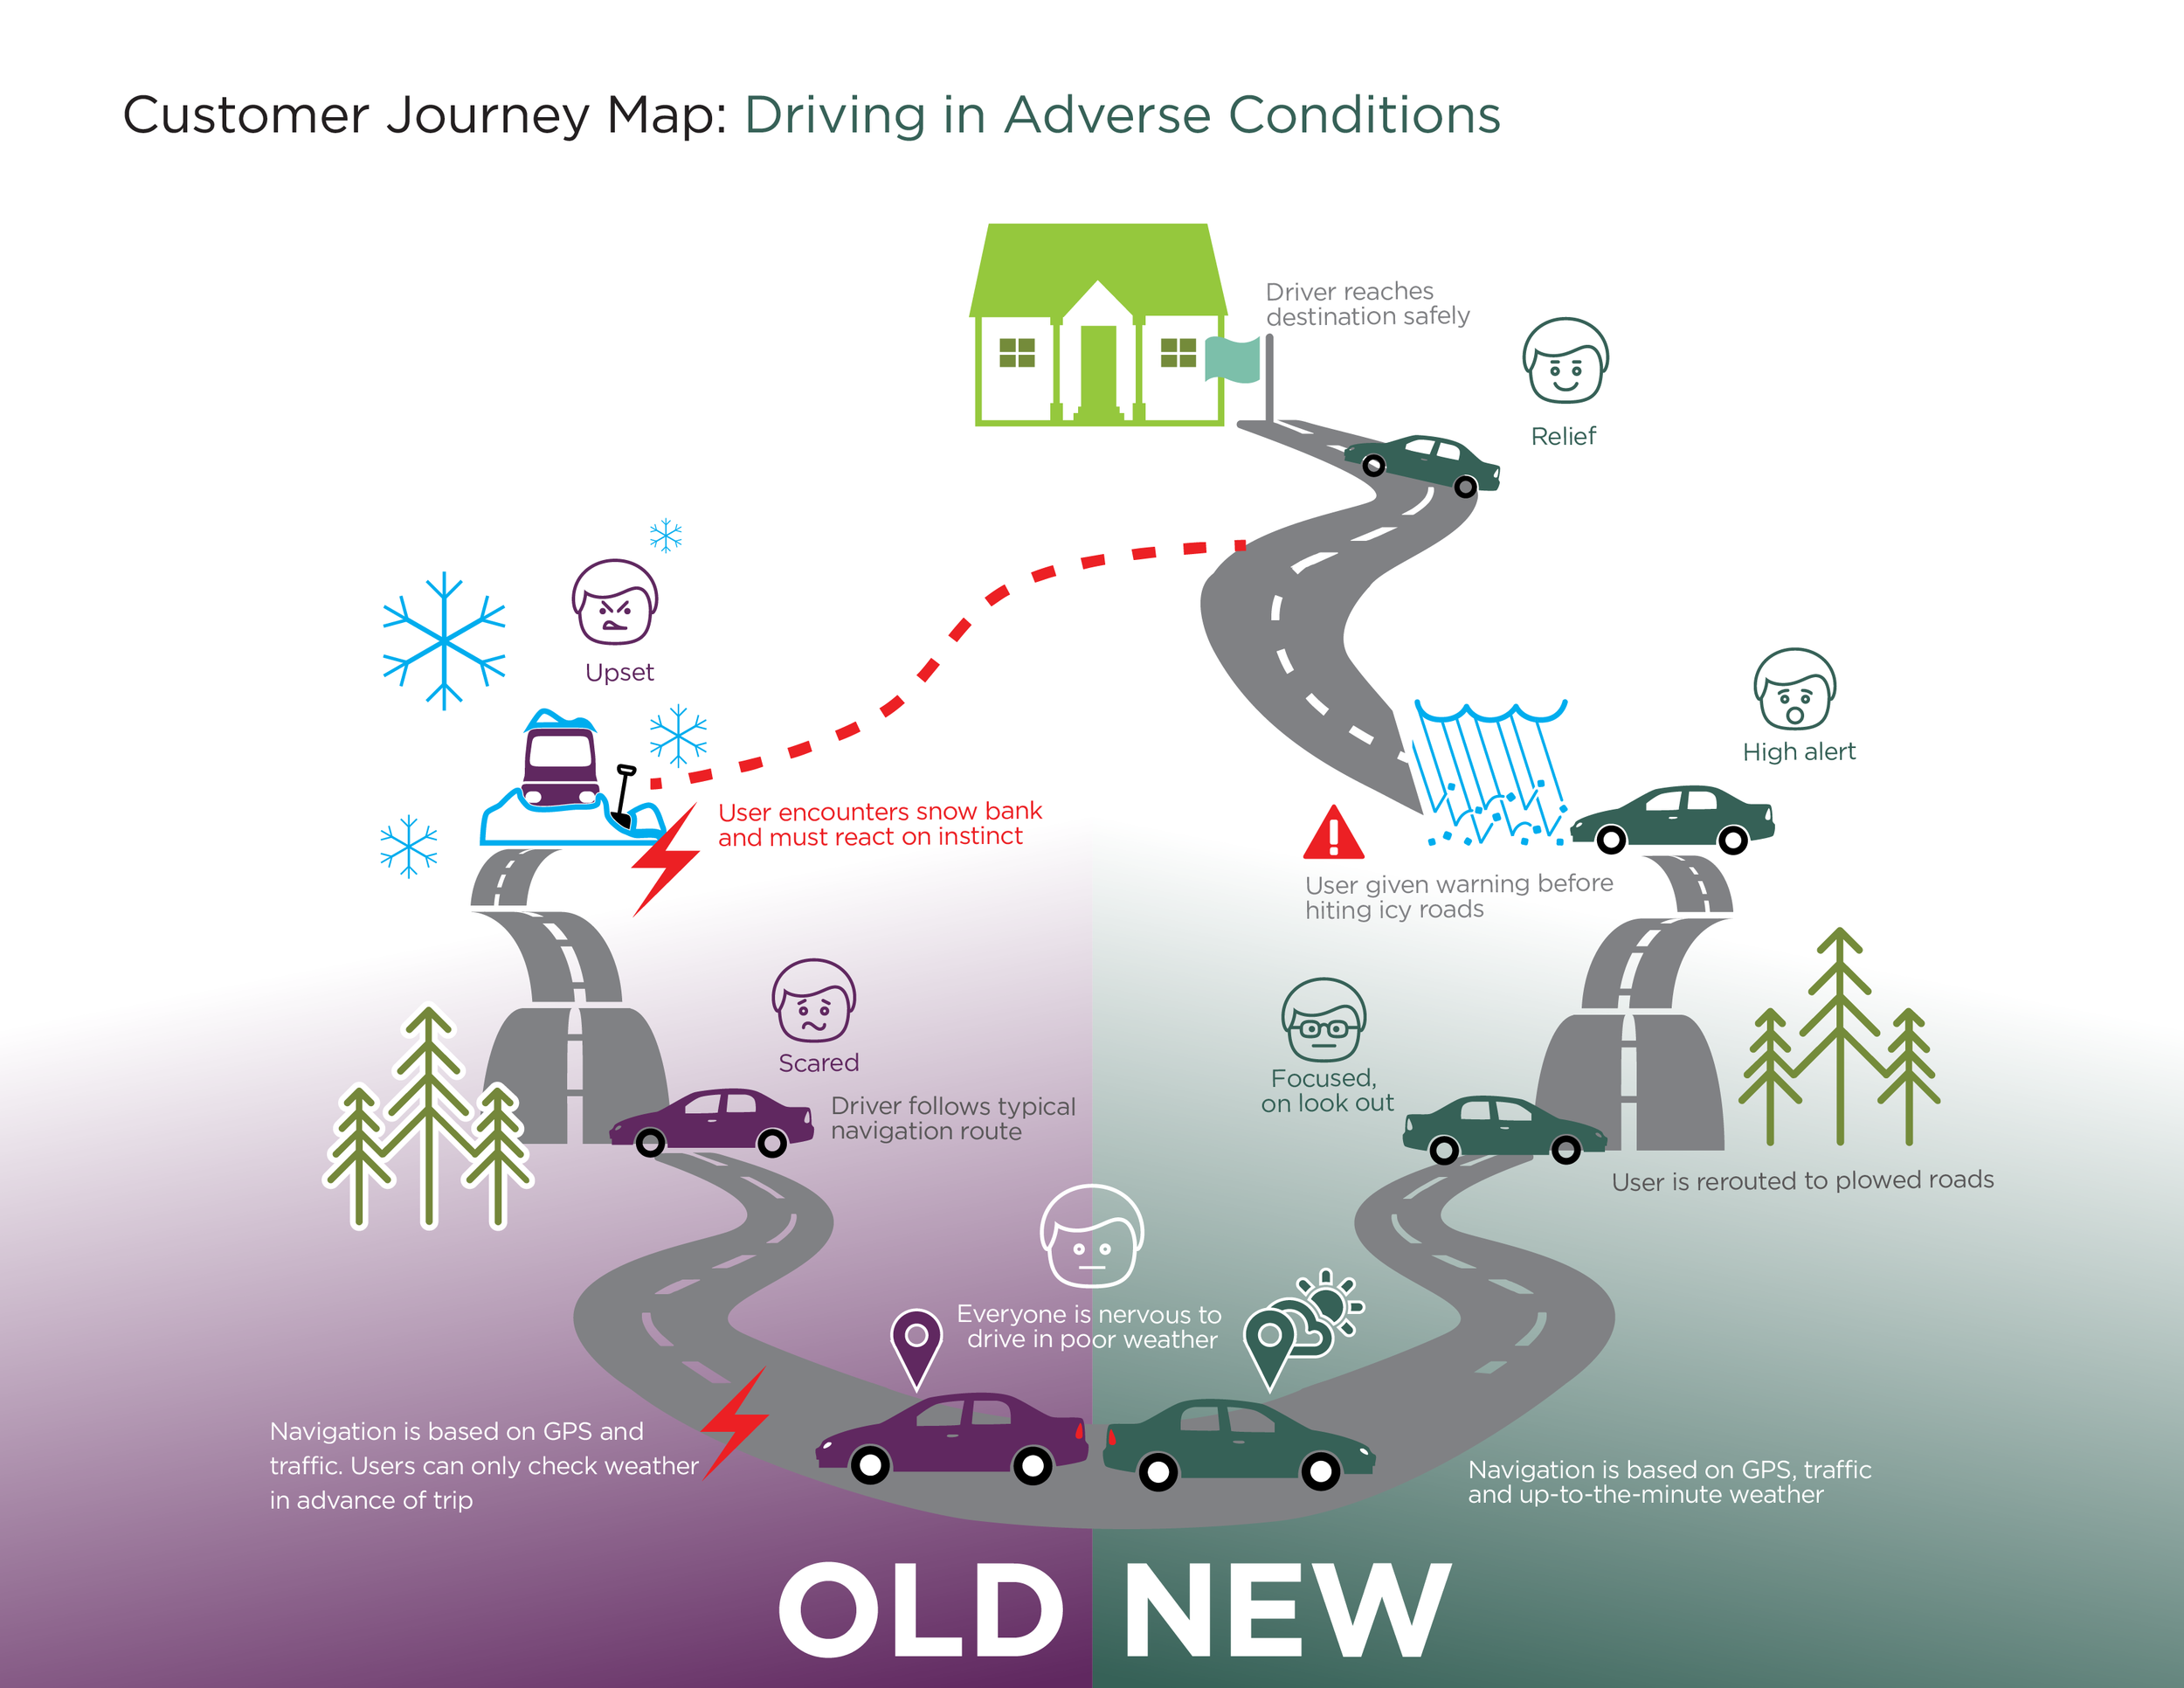 CustomerJourneyMap_Driving_IoT.jpg